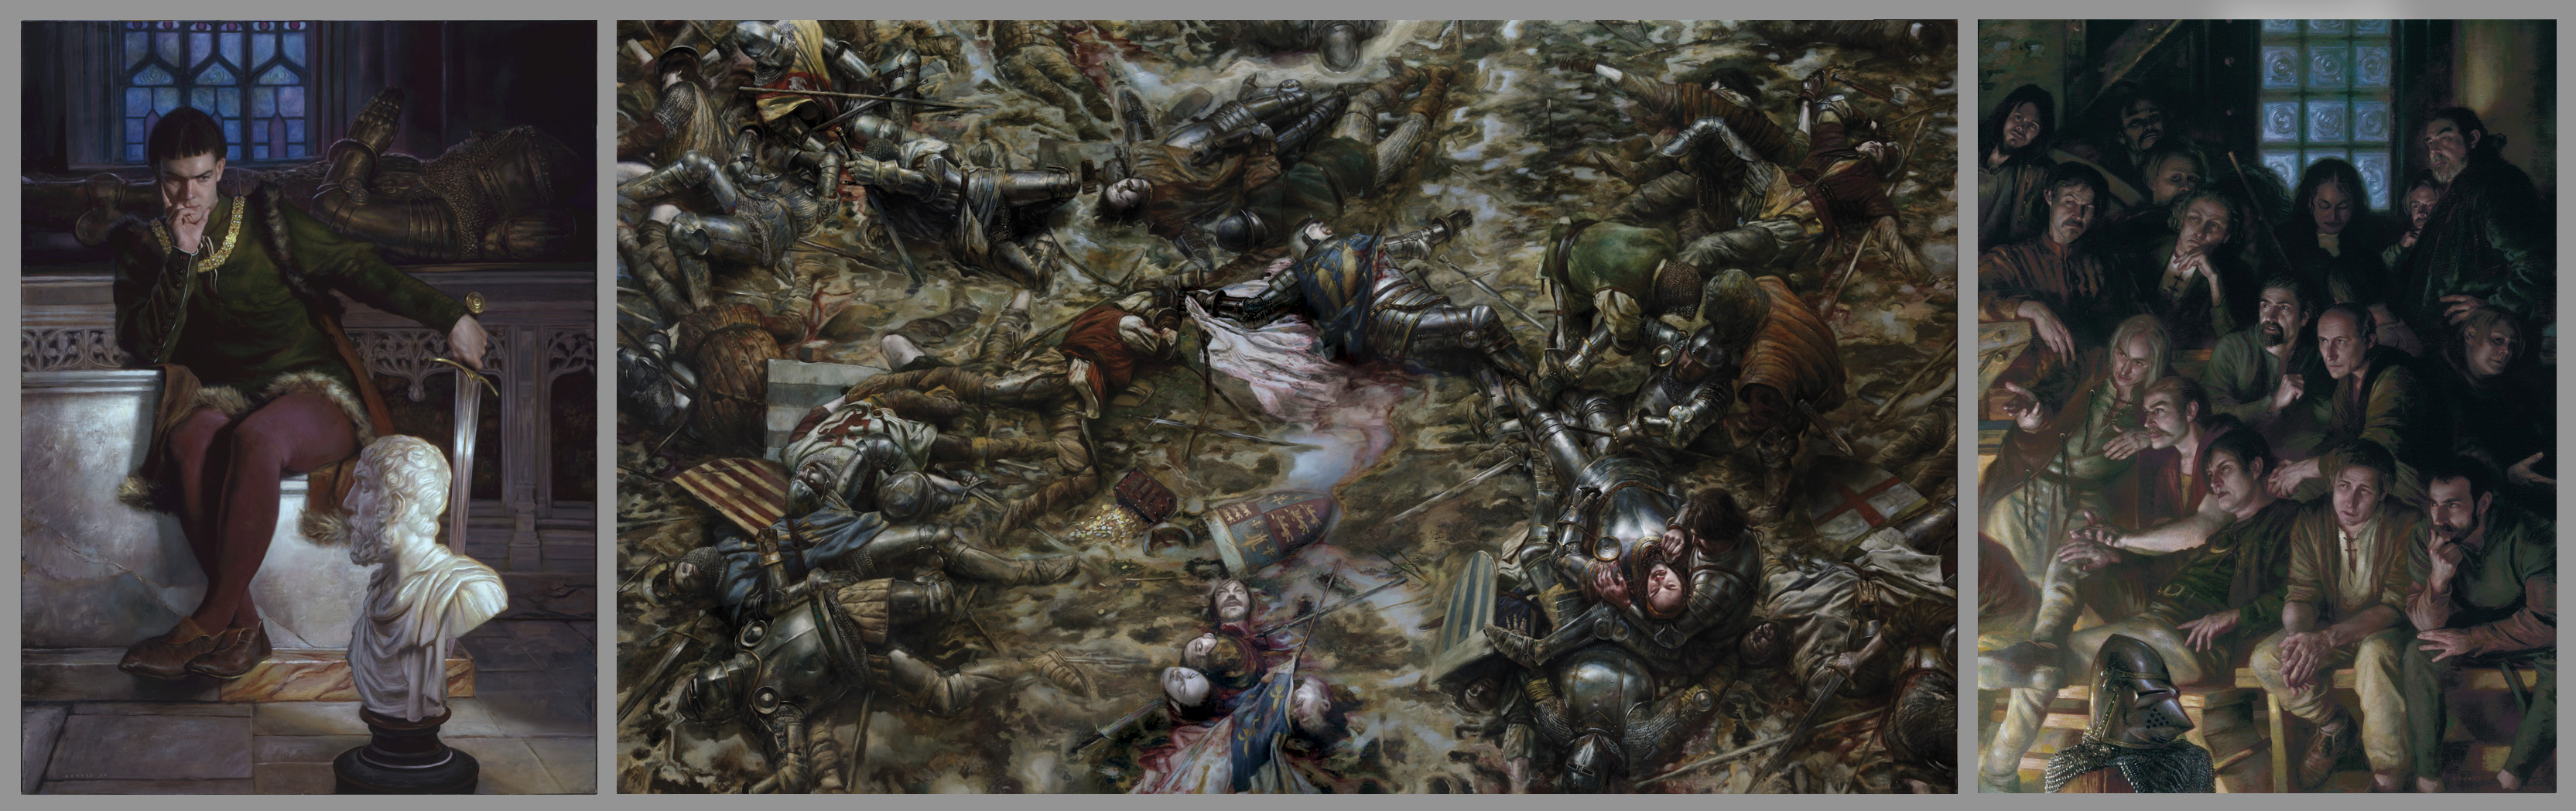 "Henry V The Battle of Agincourt, 25 October 1415 triptych overall 48"" x 168""  Oil on Panel Collection of Scot Tubbs"